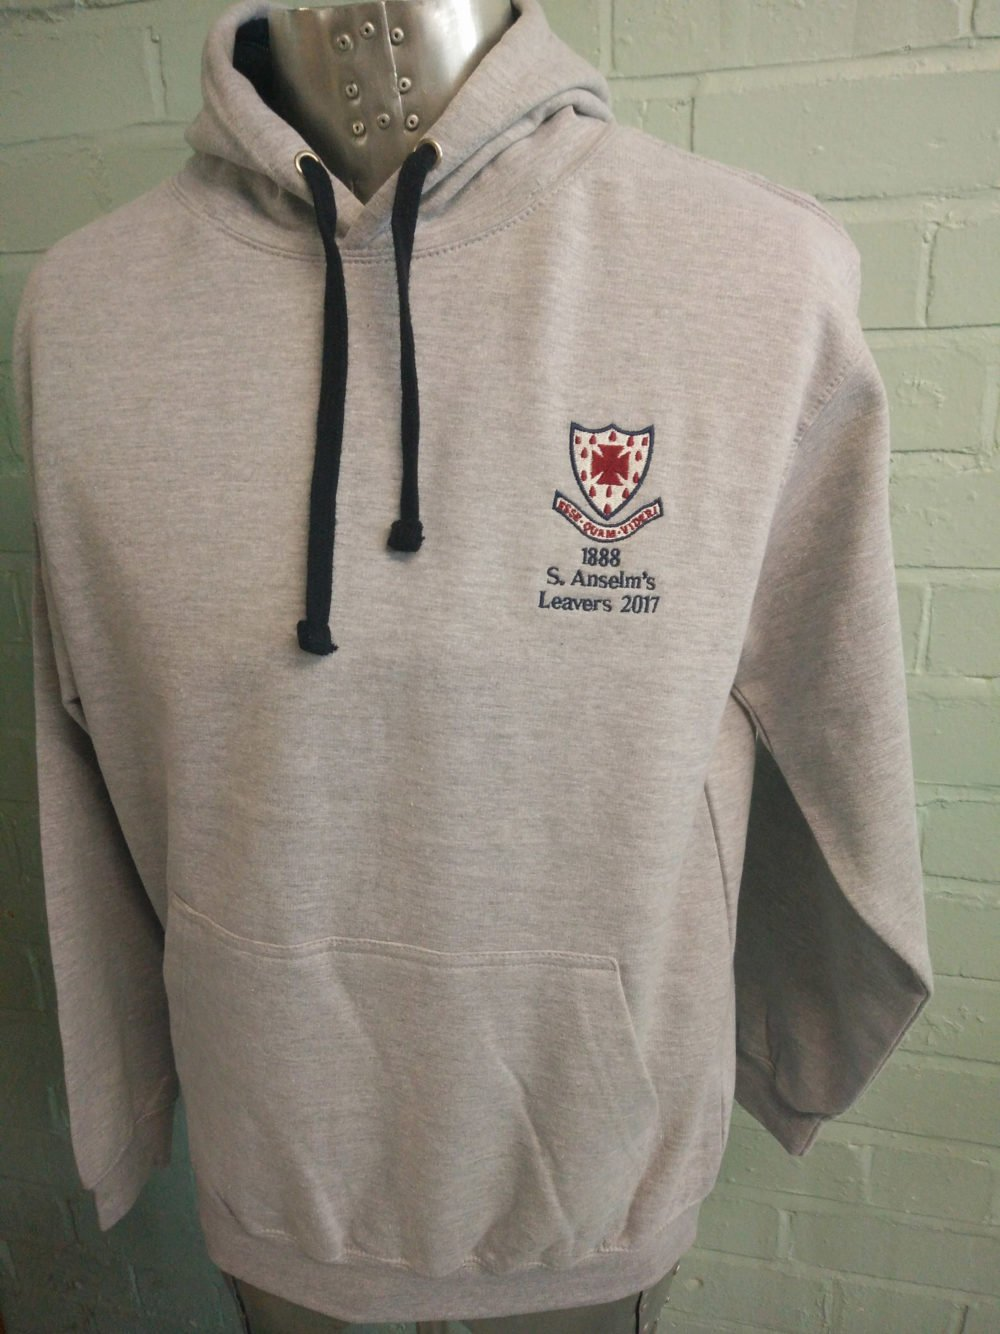 Anselm's Leavers 2017 Marl Custom Hoodies